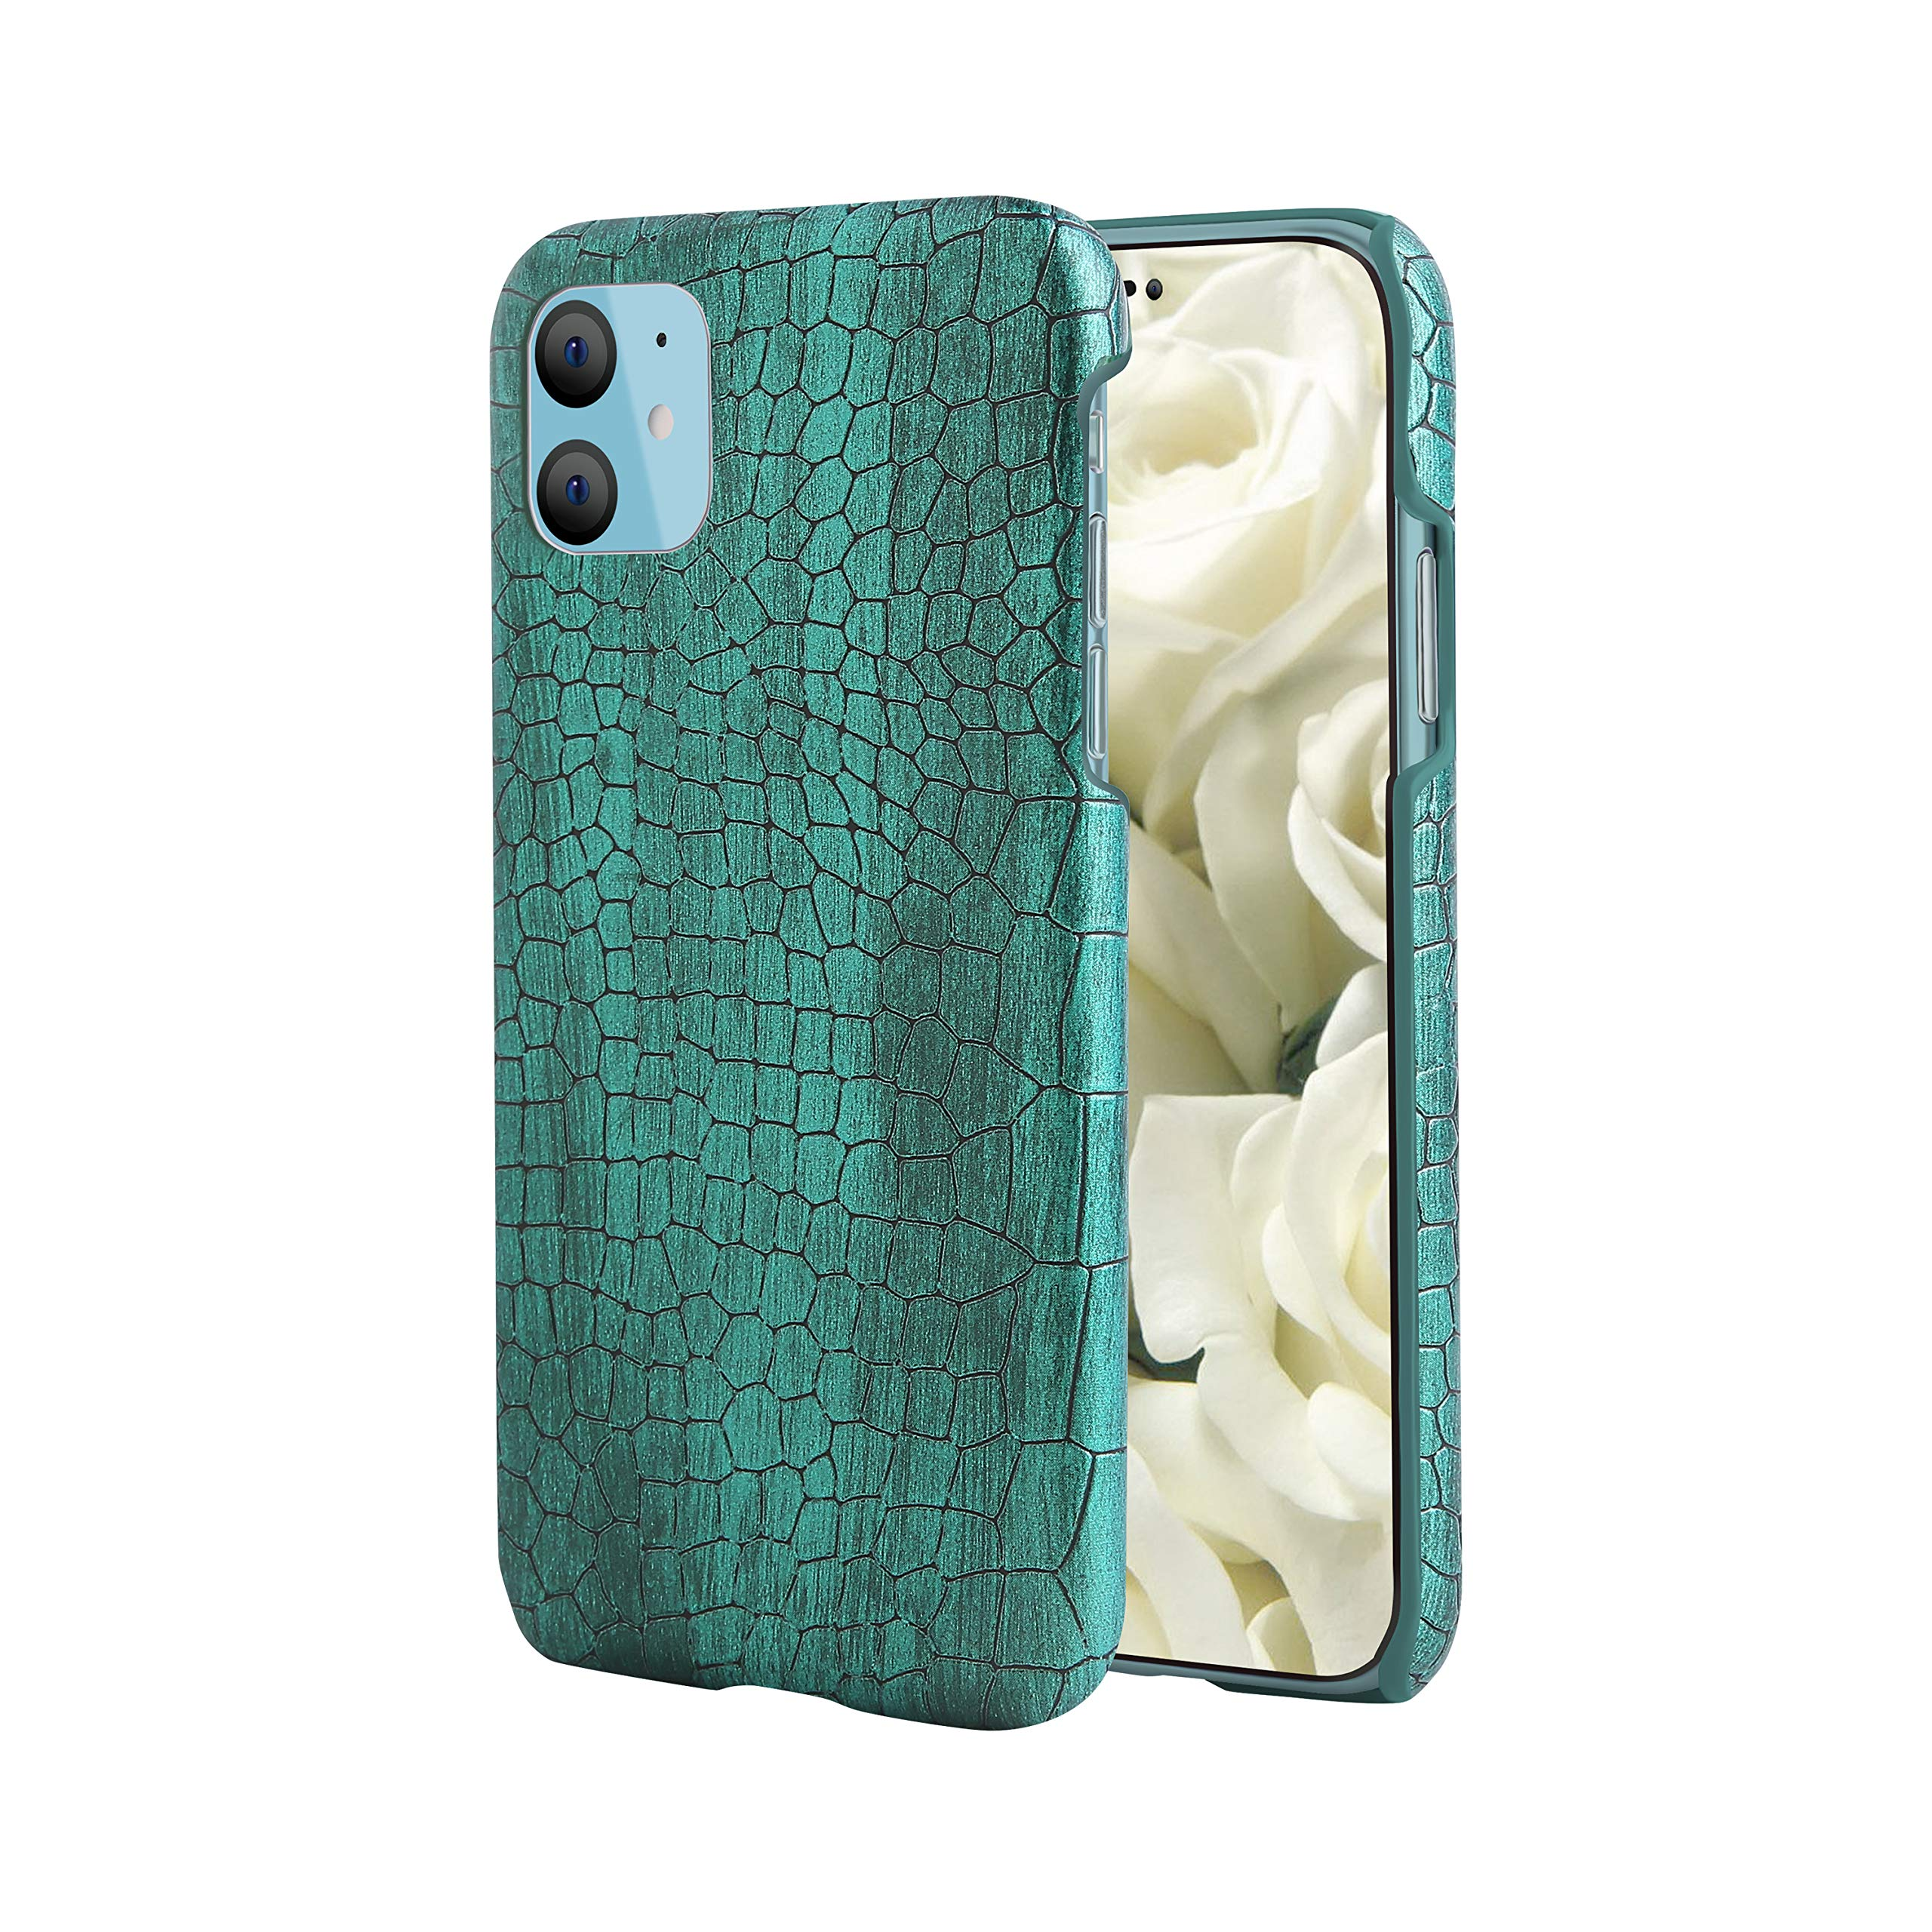 iPhone 11 Pro Max Case, Premium Genuine Leather Case, Stylish Crocodile Pattern Anti-Slip Hard Shell Phone Protective Cover Compatible with iPhone 11 6.2 inch [2019] [Crocodile Green]